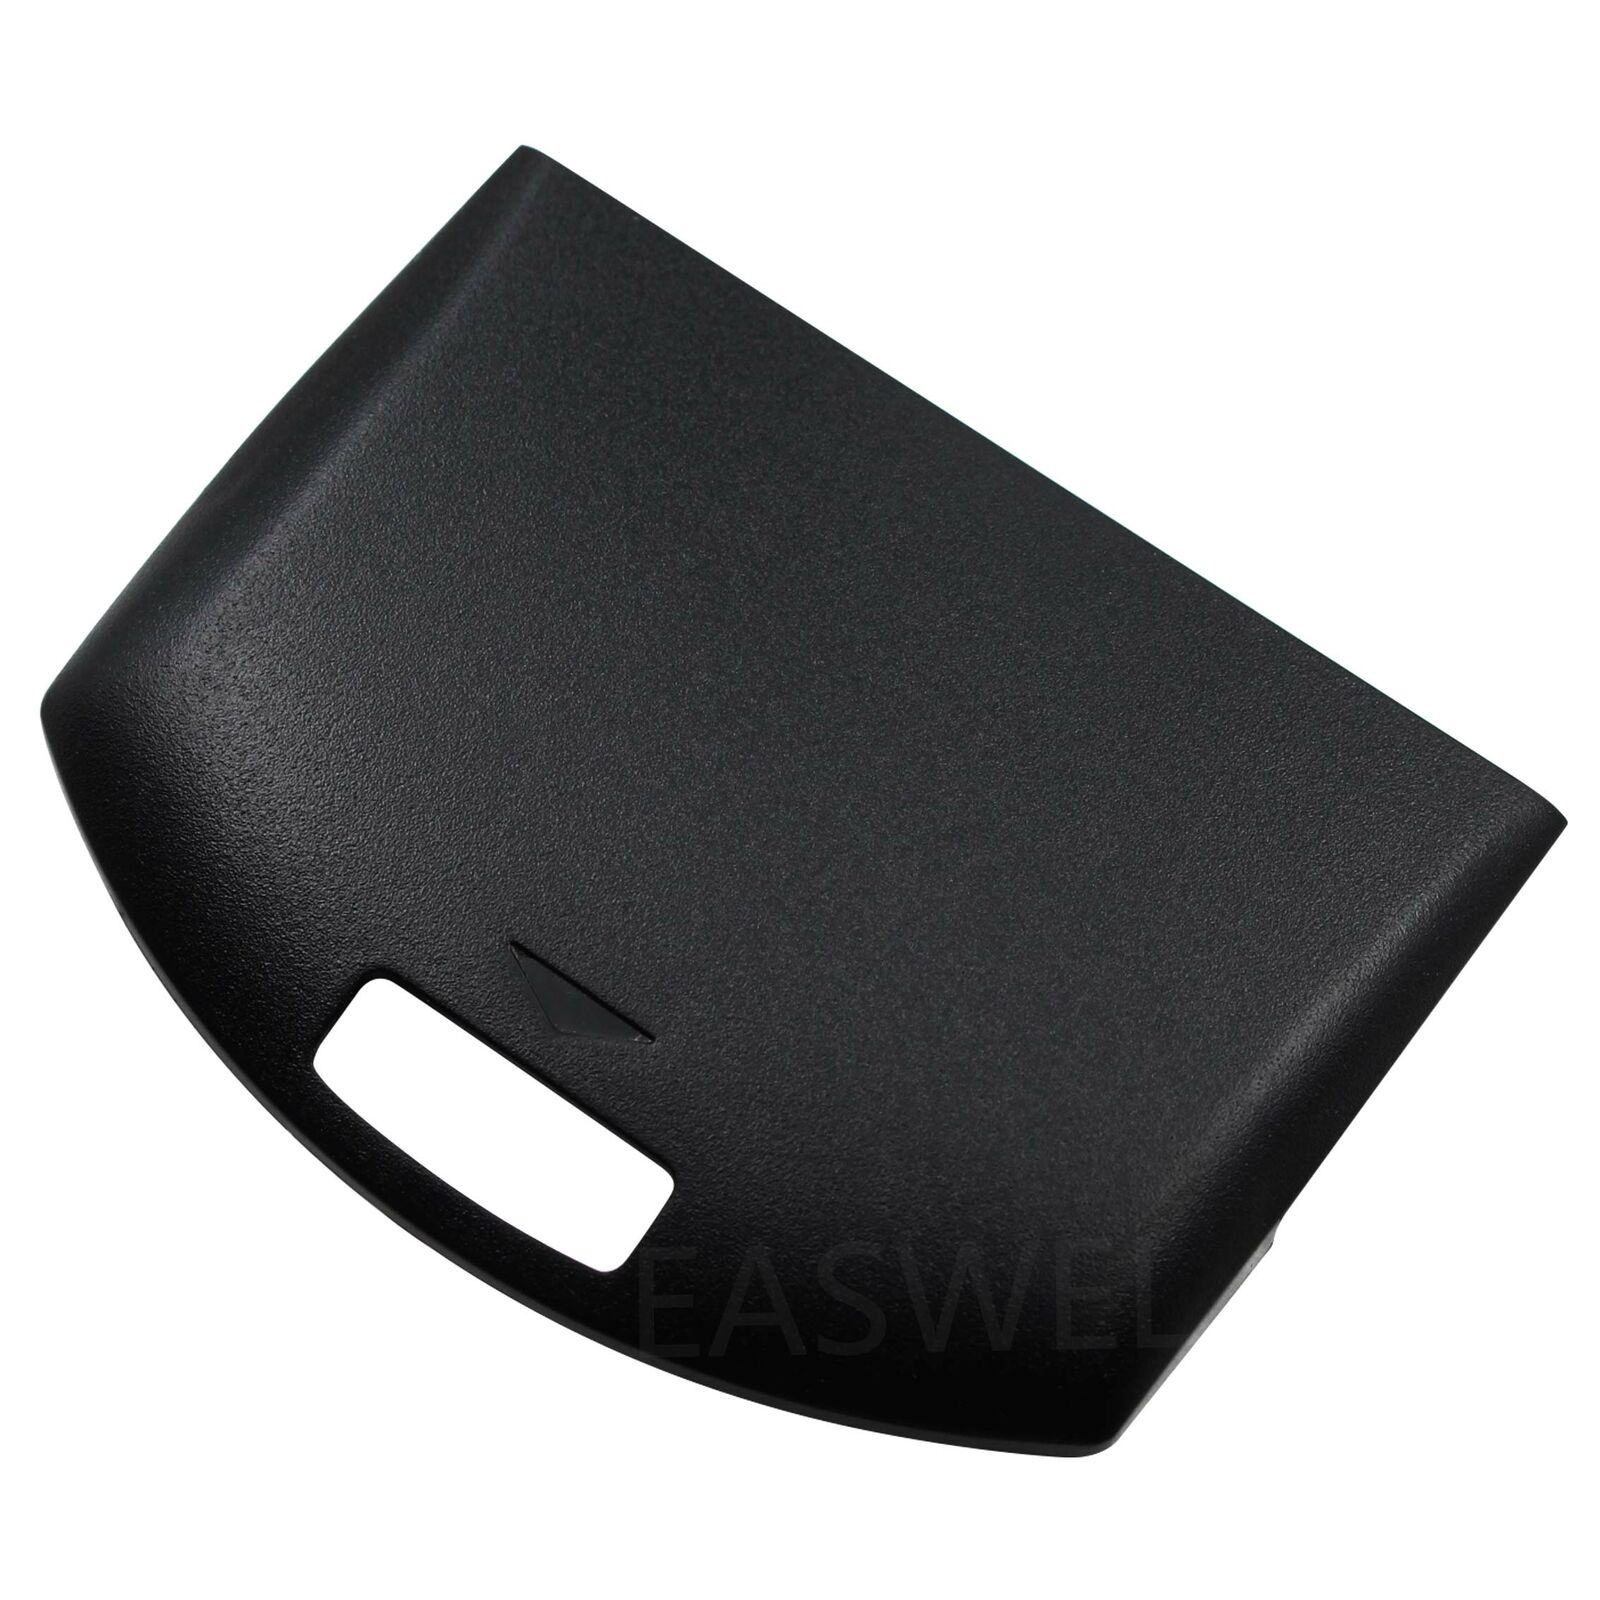 1Pc Back Battery Replacement Cover Door Case for Sony PSP 1000 1001 Fat New